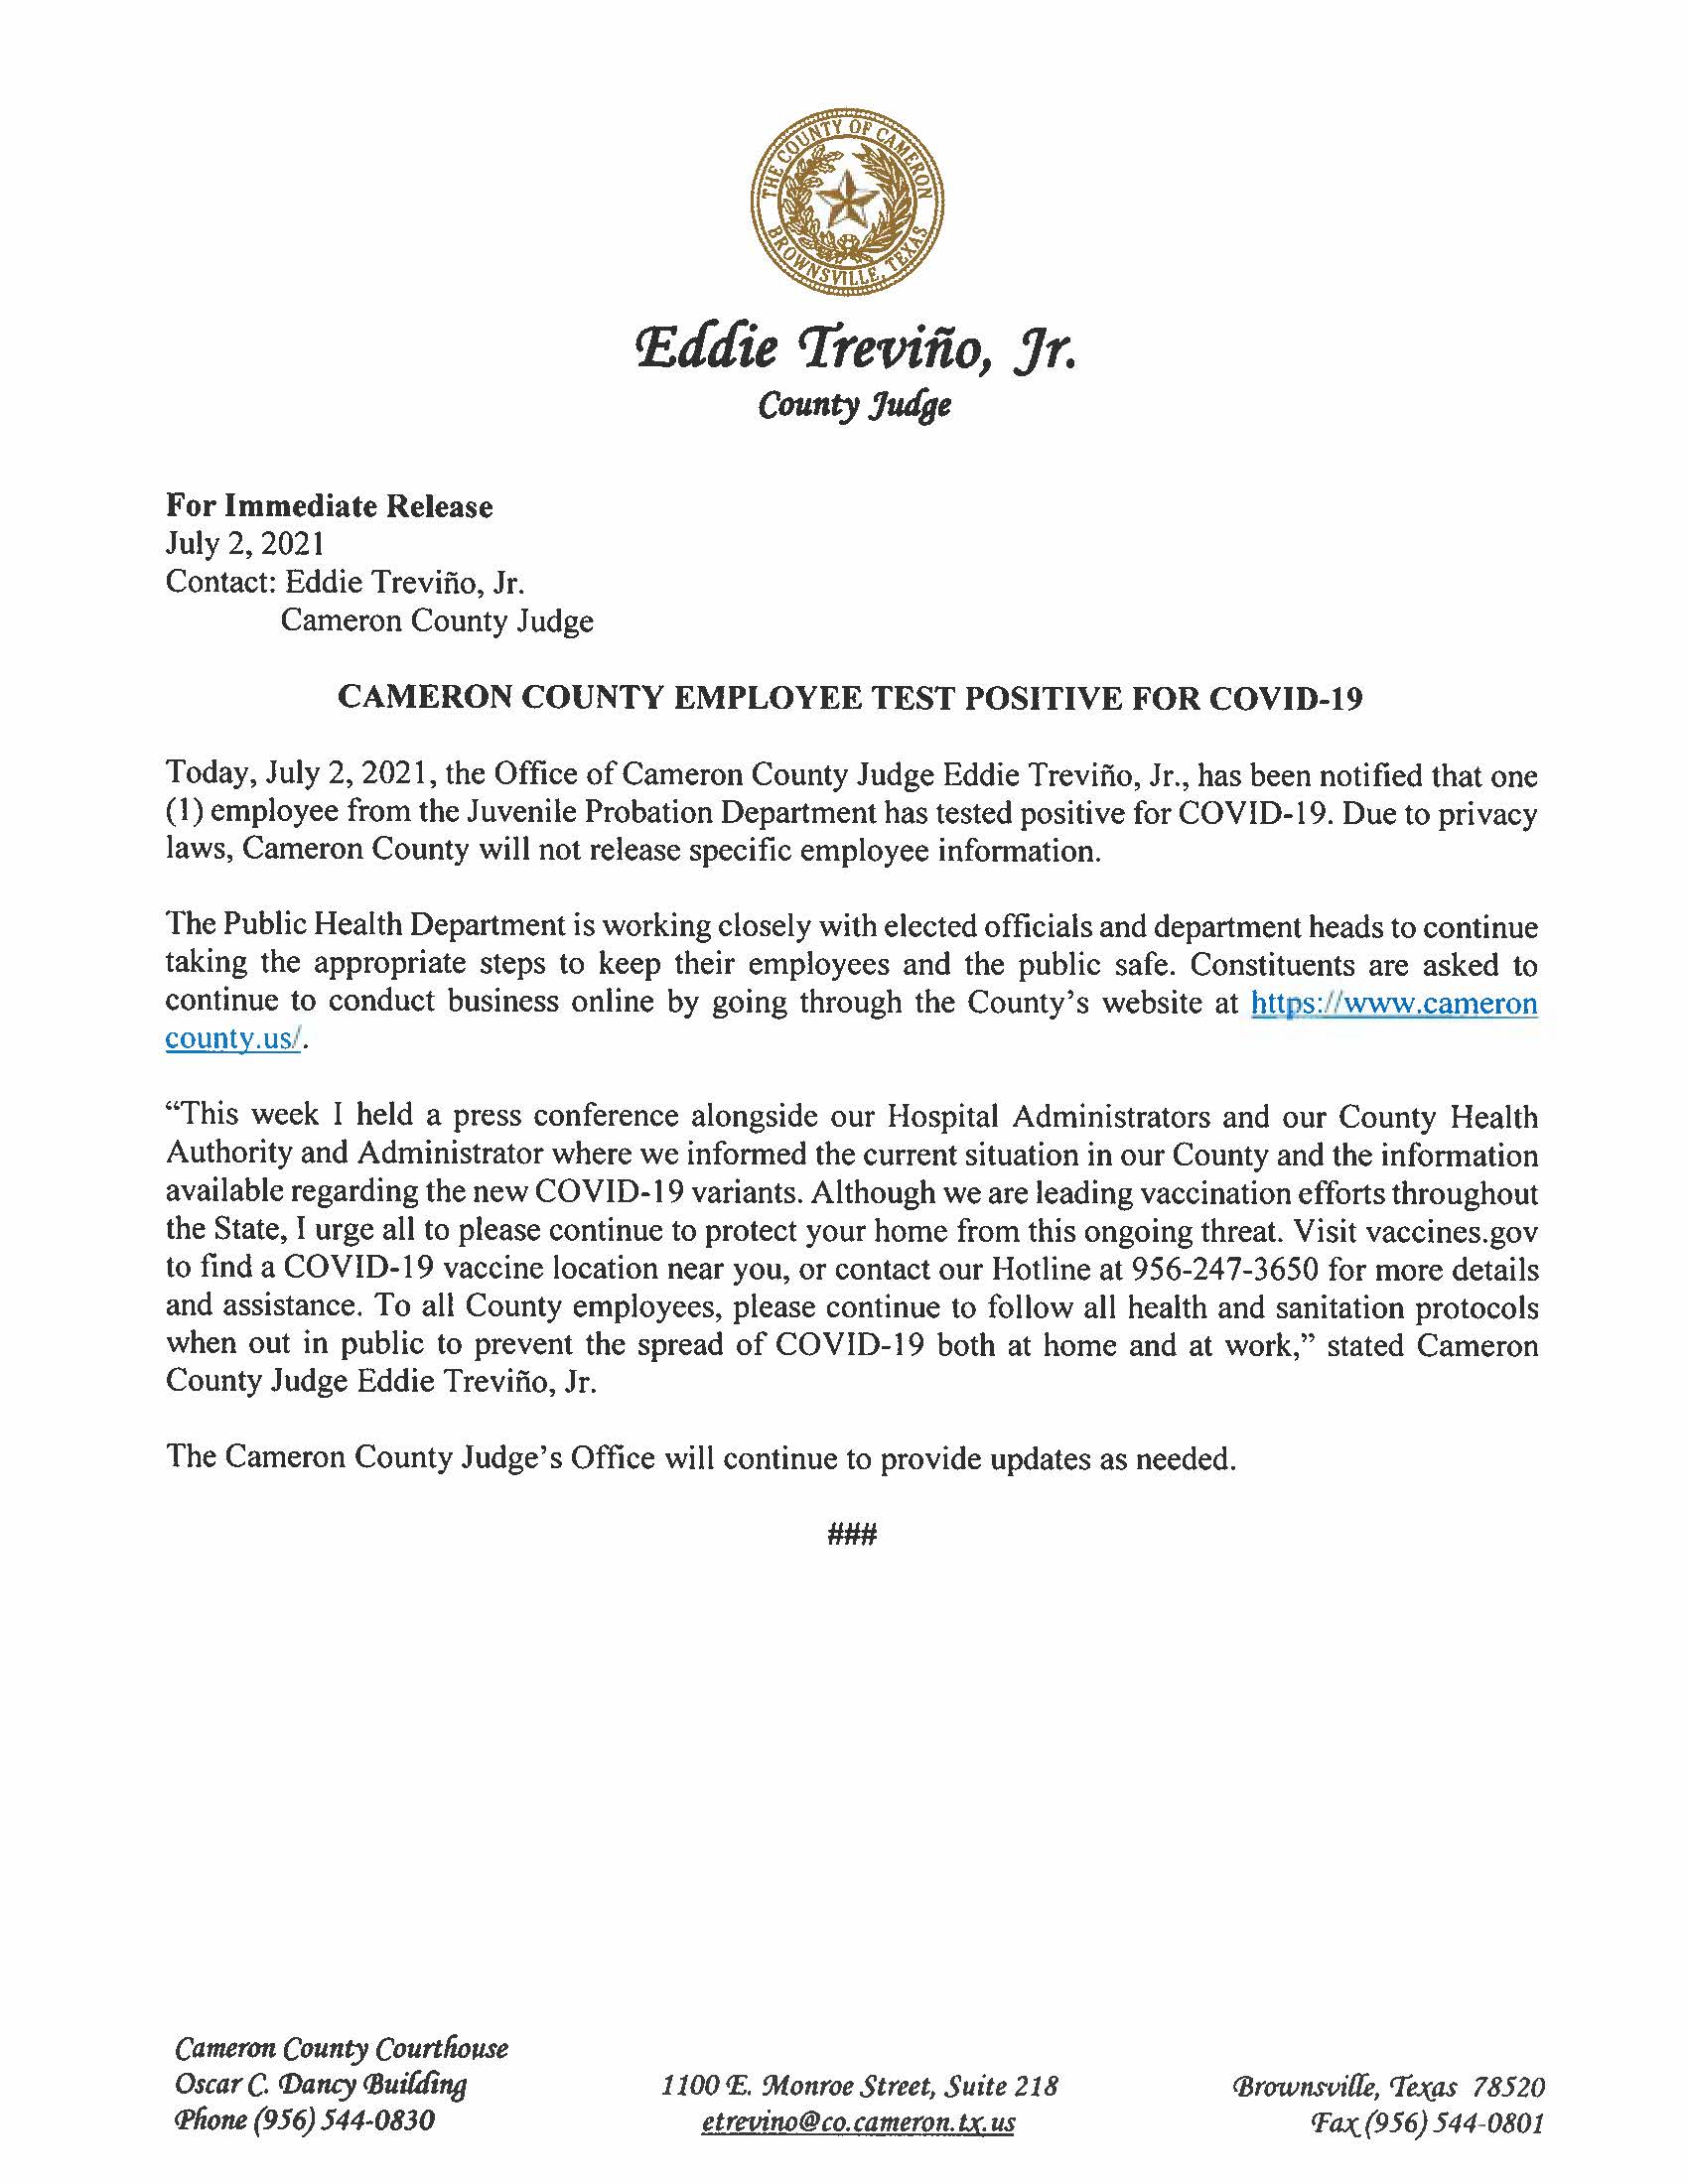 7.2.21 Cameron County Employee Test Positive For COVID 19